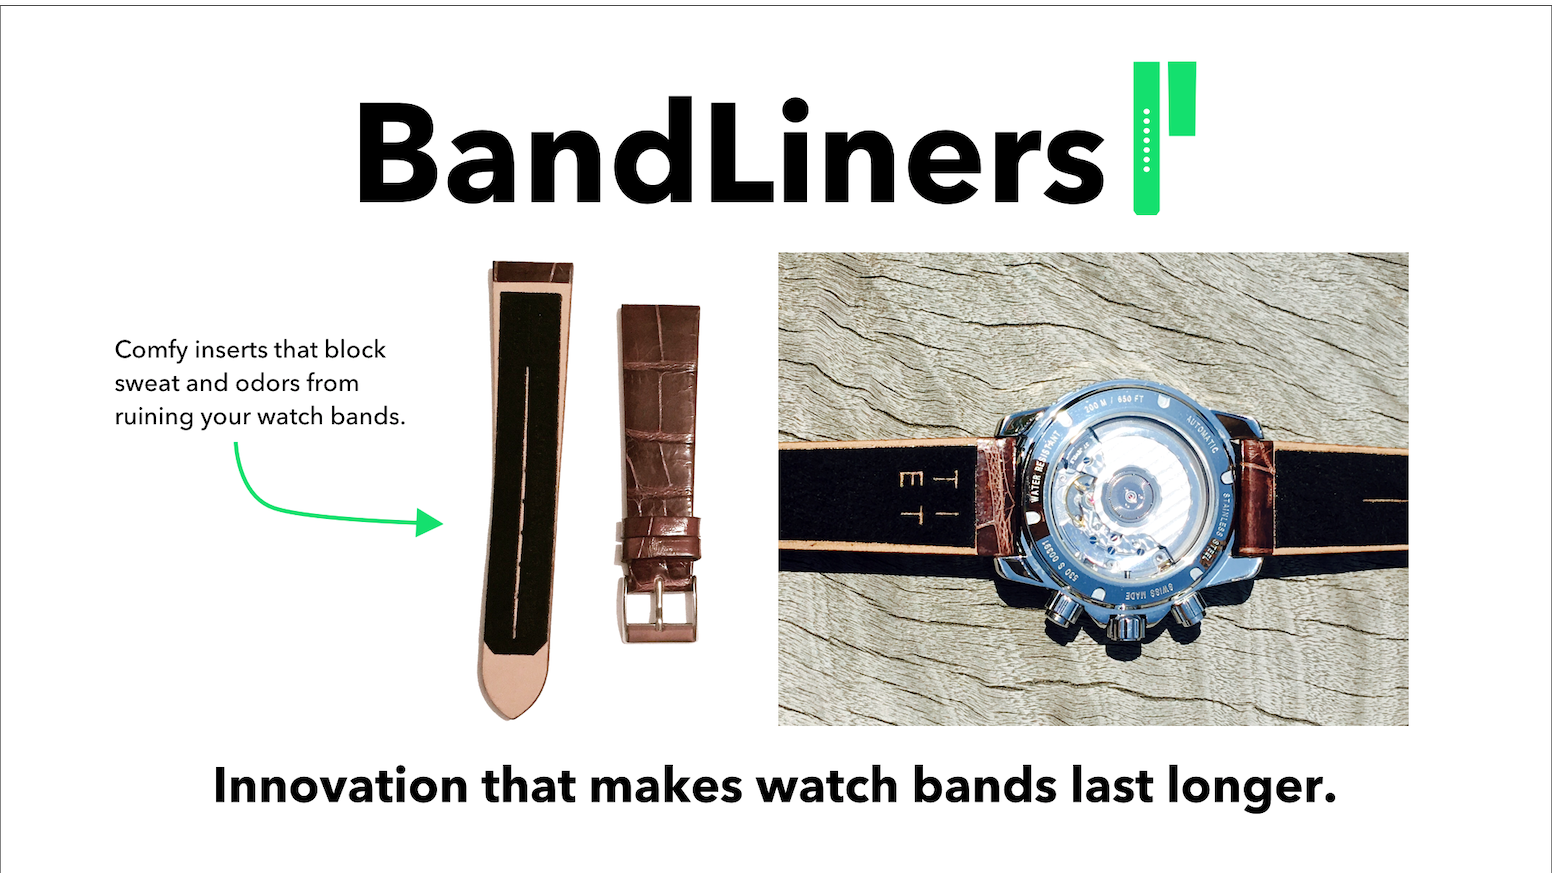 BandLiners make watch bands last longer. They block sweat & skin contact, stop odors from taking hold, and even reduce skin irritation.